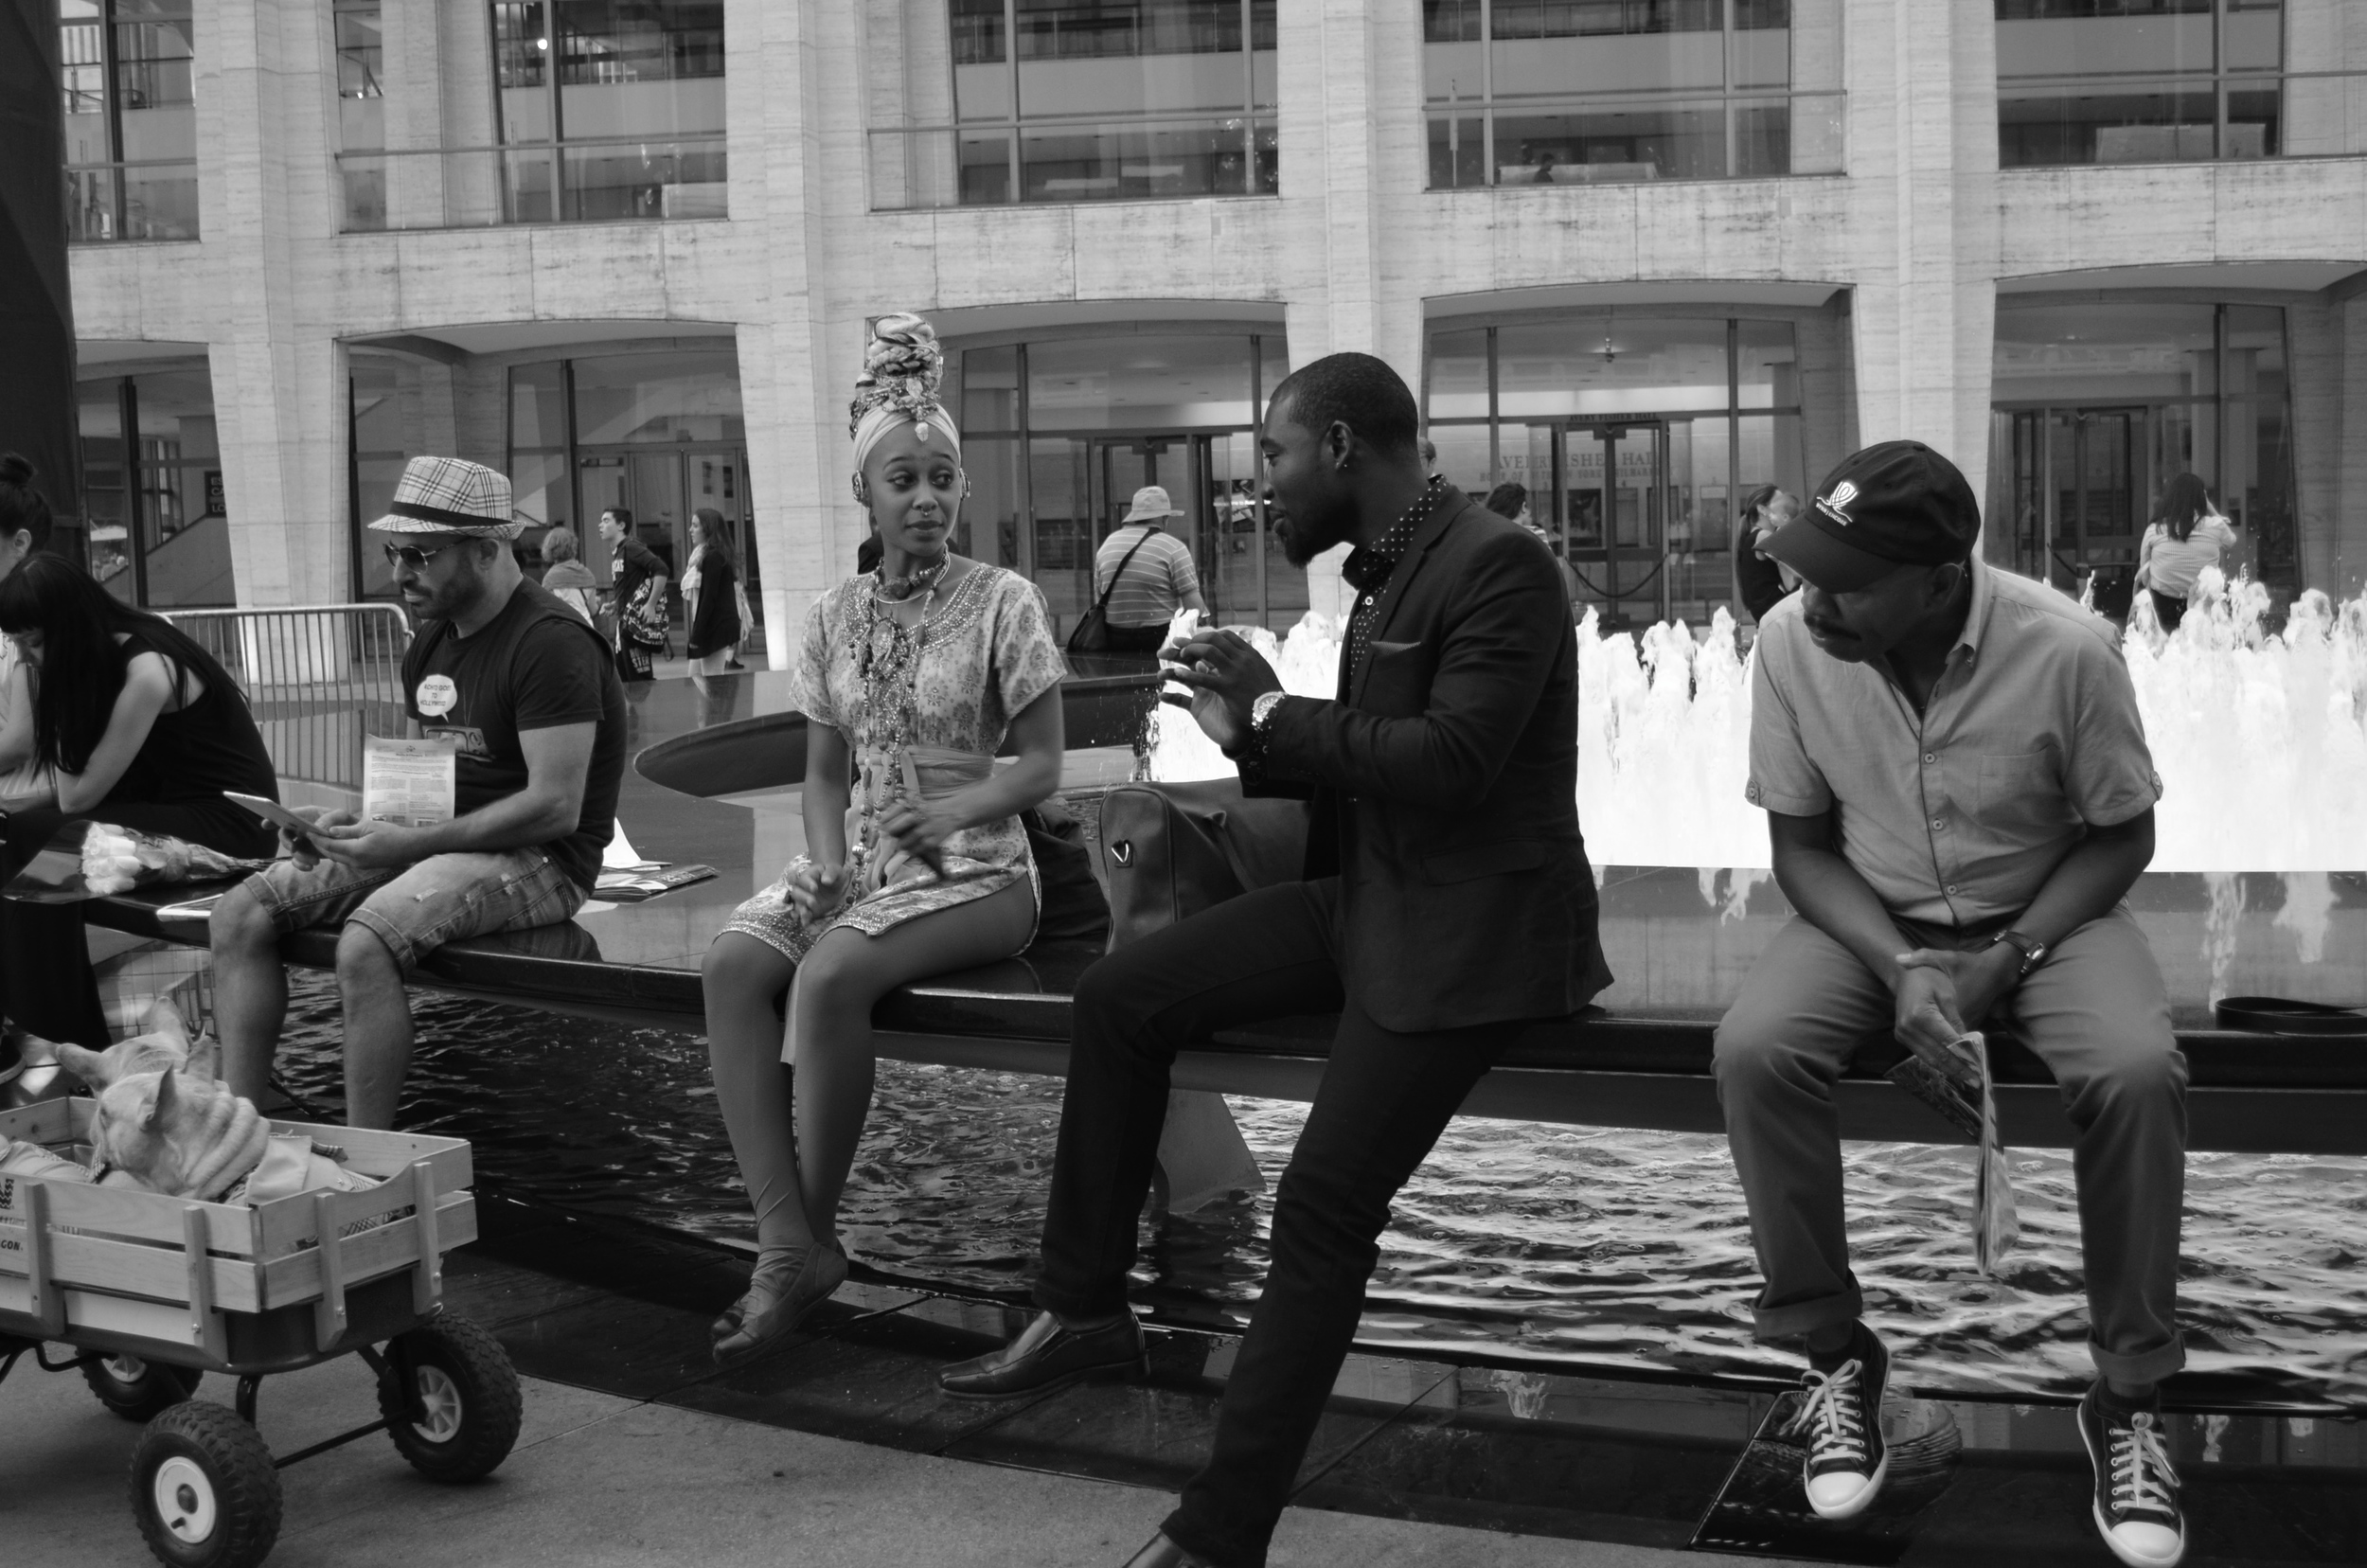 One lady, three men at Lincoln Center - New York Fashion Week.